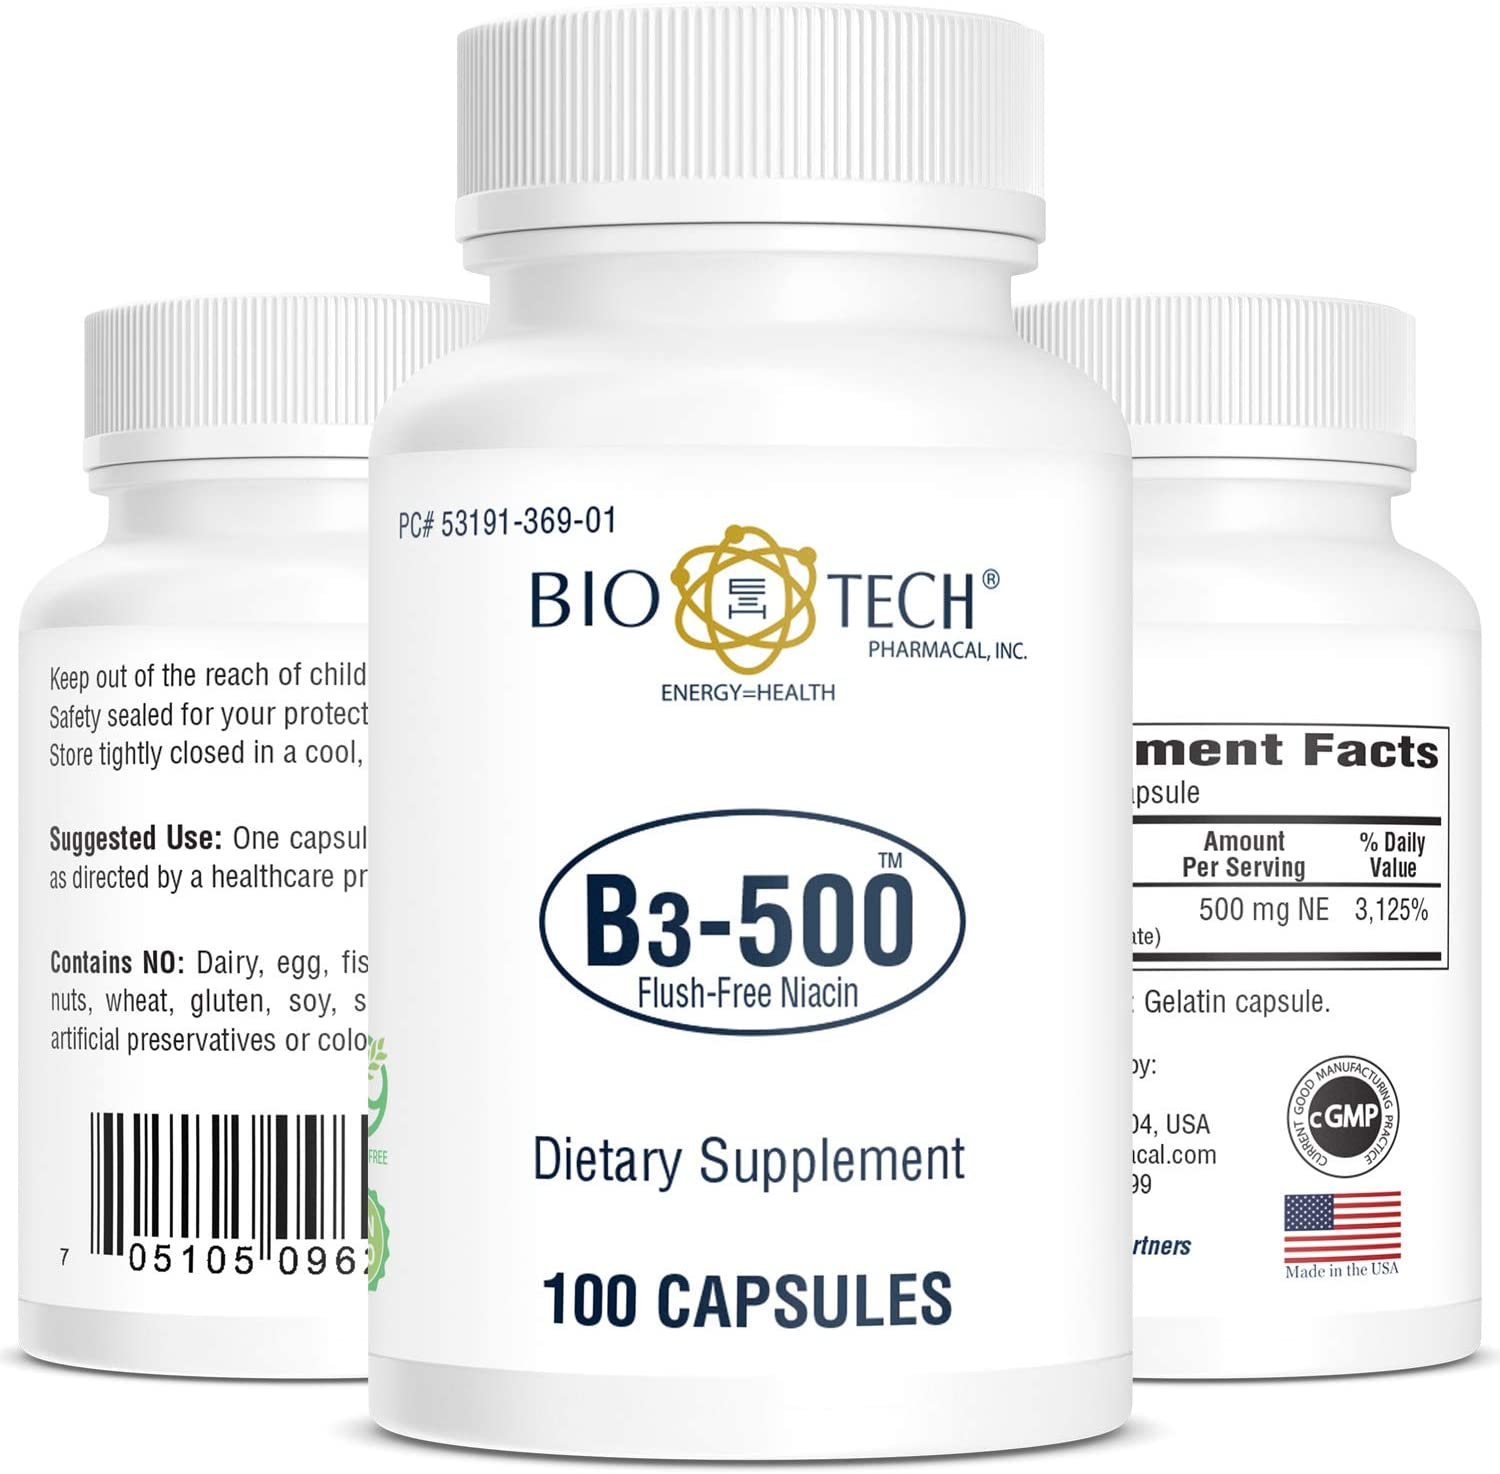 BioTech Pharmacal - B3-500 (Inositol Niacinate) - 100 Count